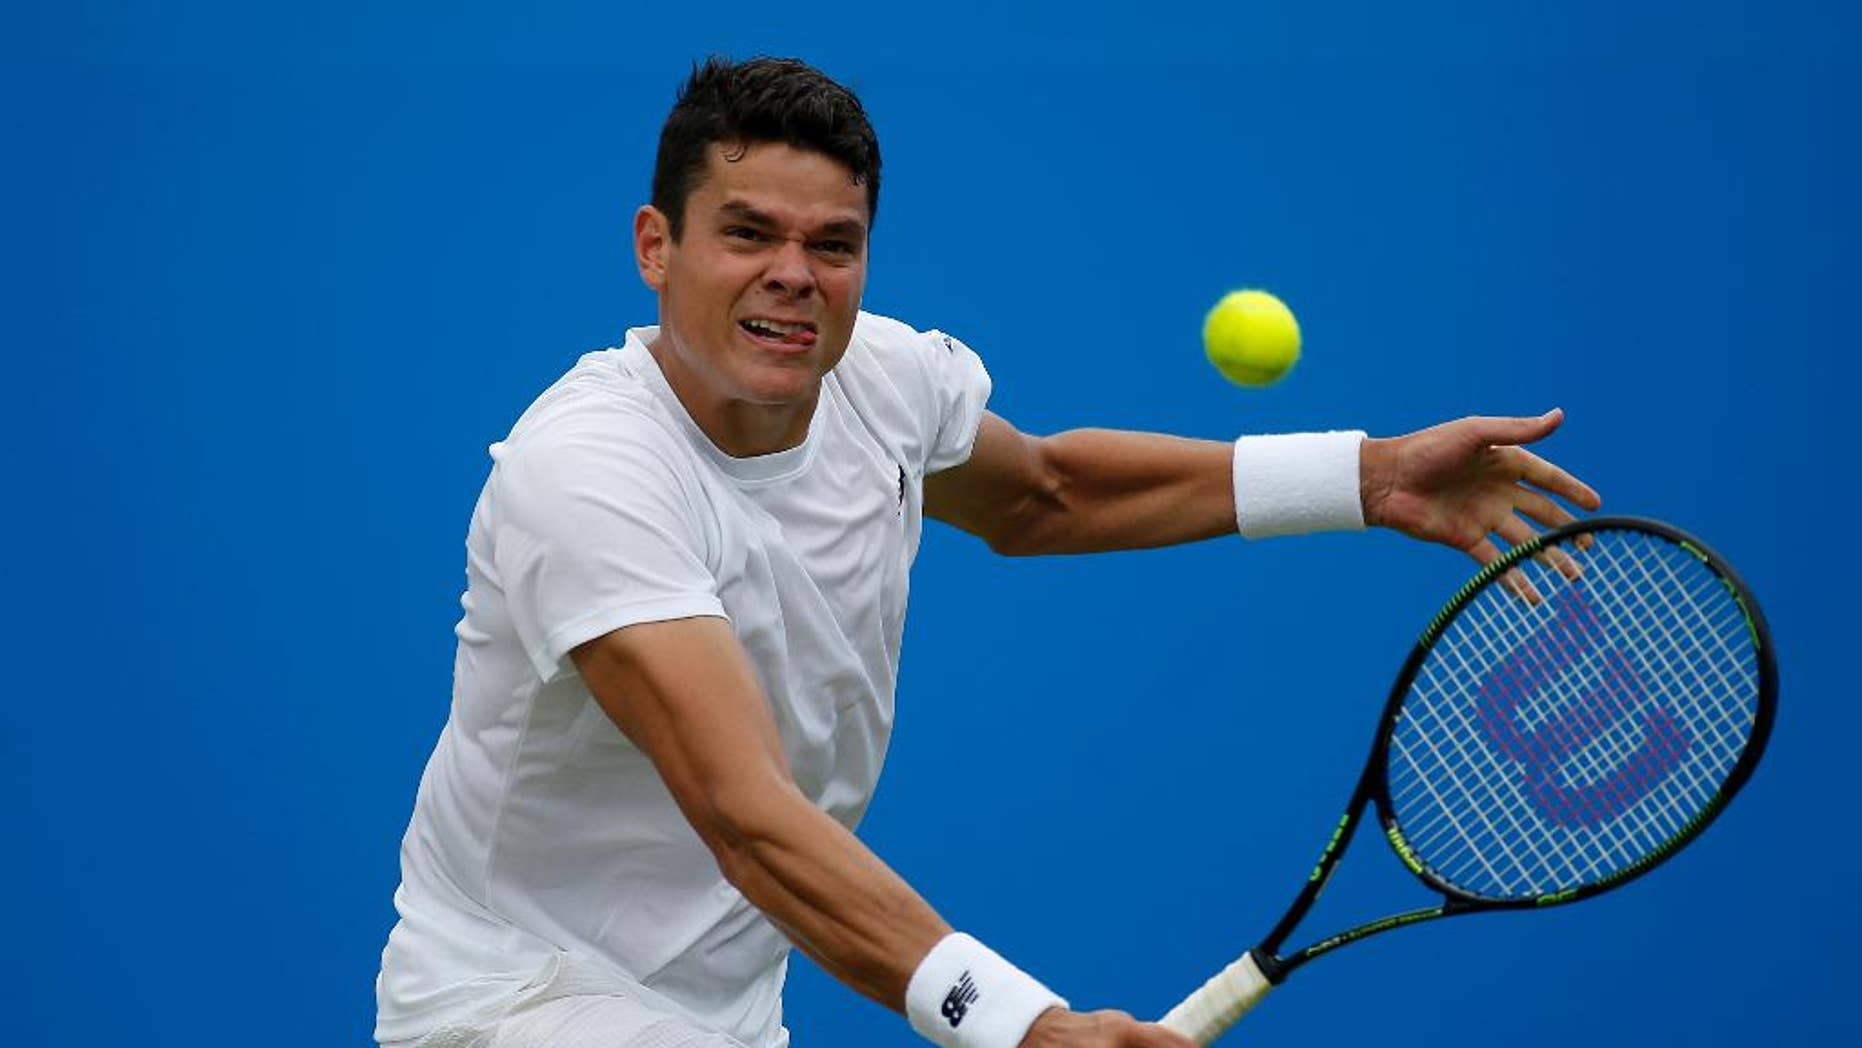 Canada's Milos Raonic makes a return to the Czech Republic's Jiri Vesely, during day four of the 2016 tennis Championships at The Queen's Club, London, Thursday June 16, 2016. (Steve Paston/PA via AP)  UNITED KINGDOM OUT